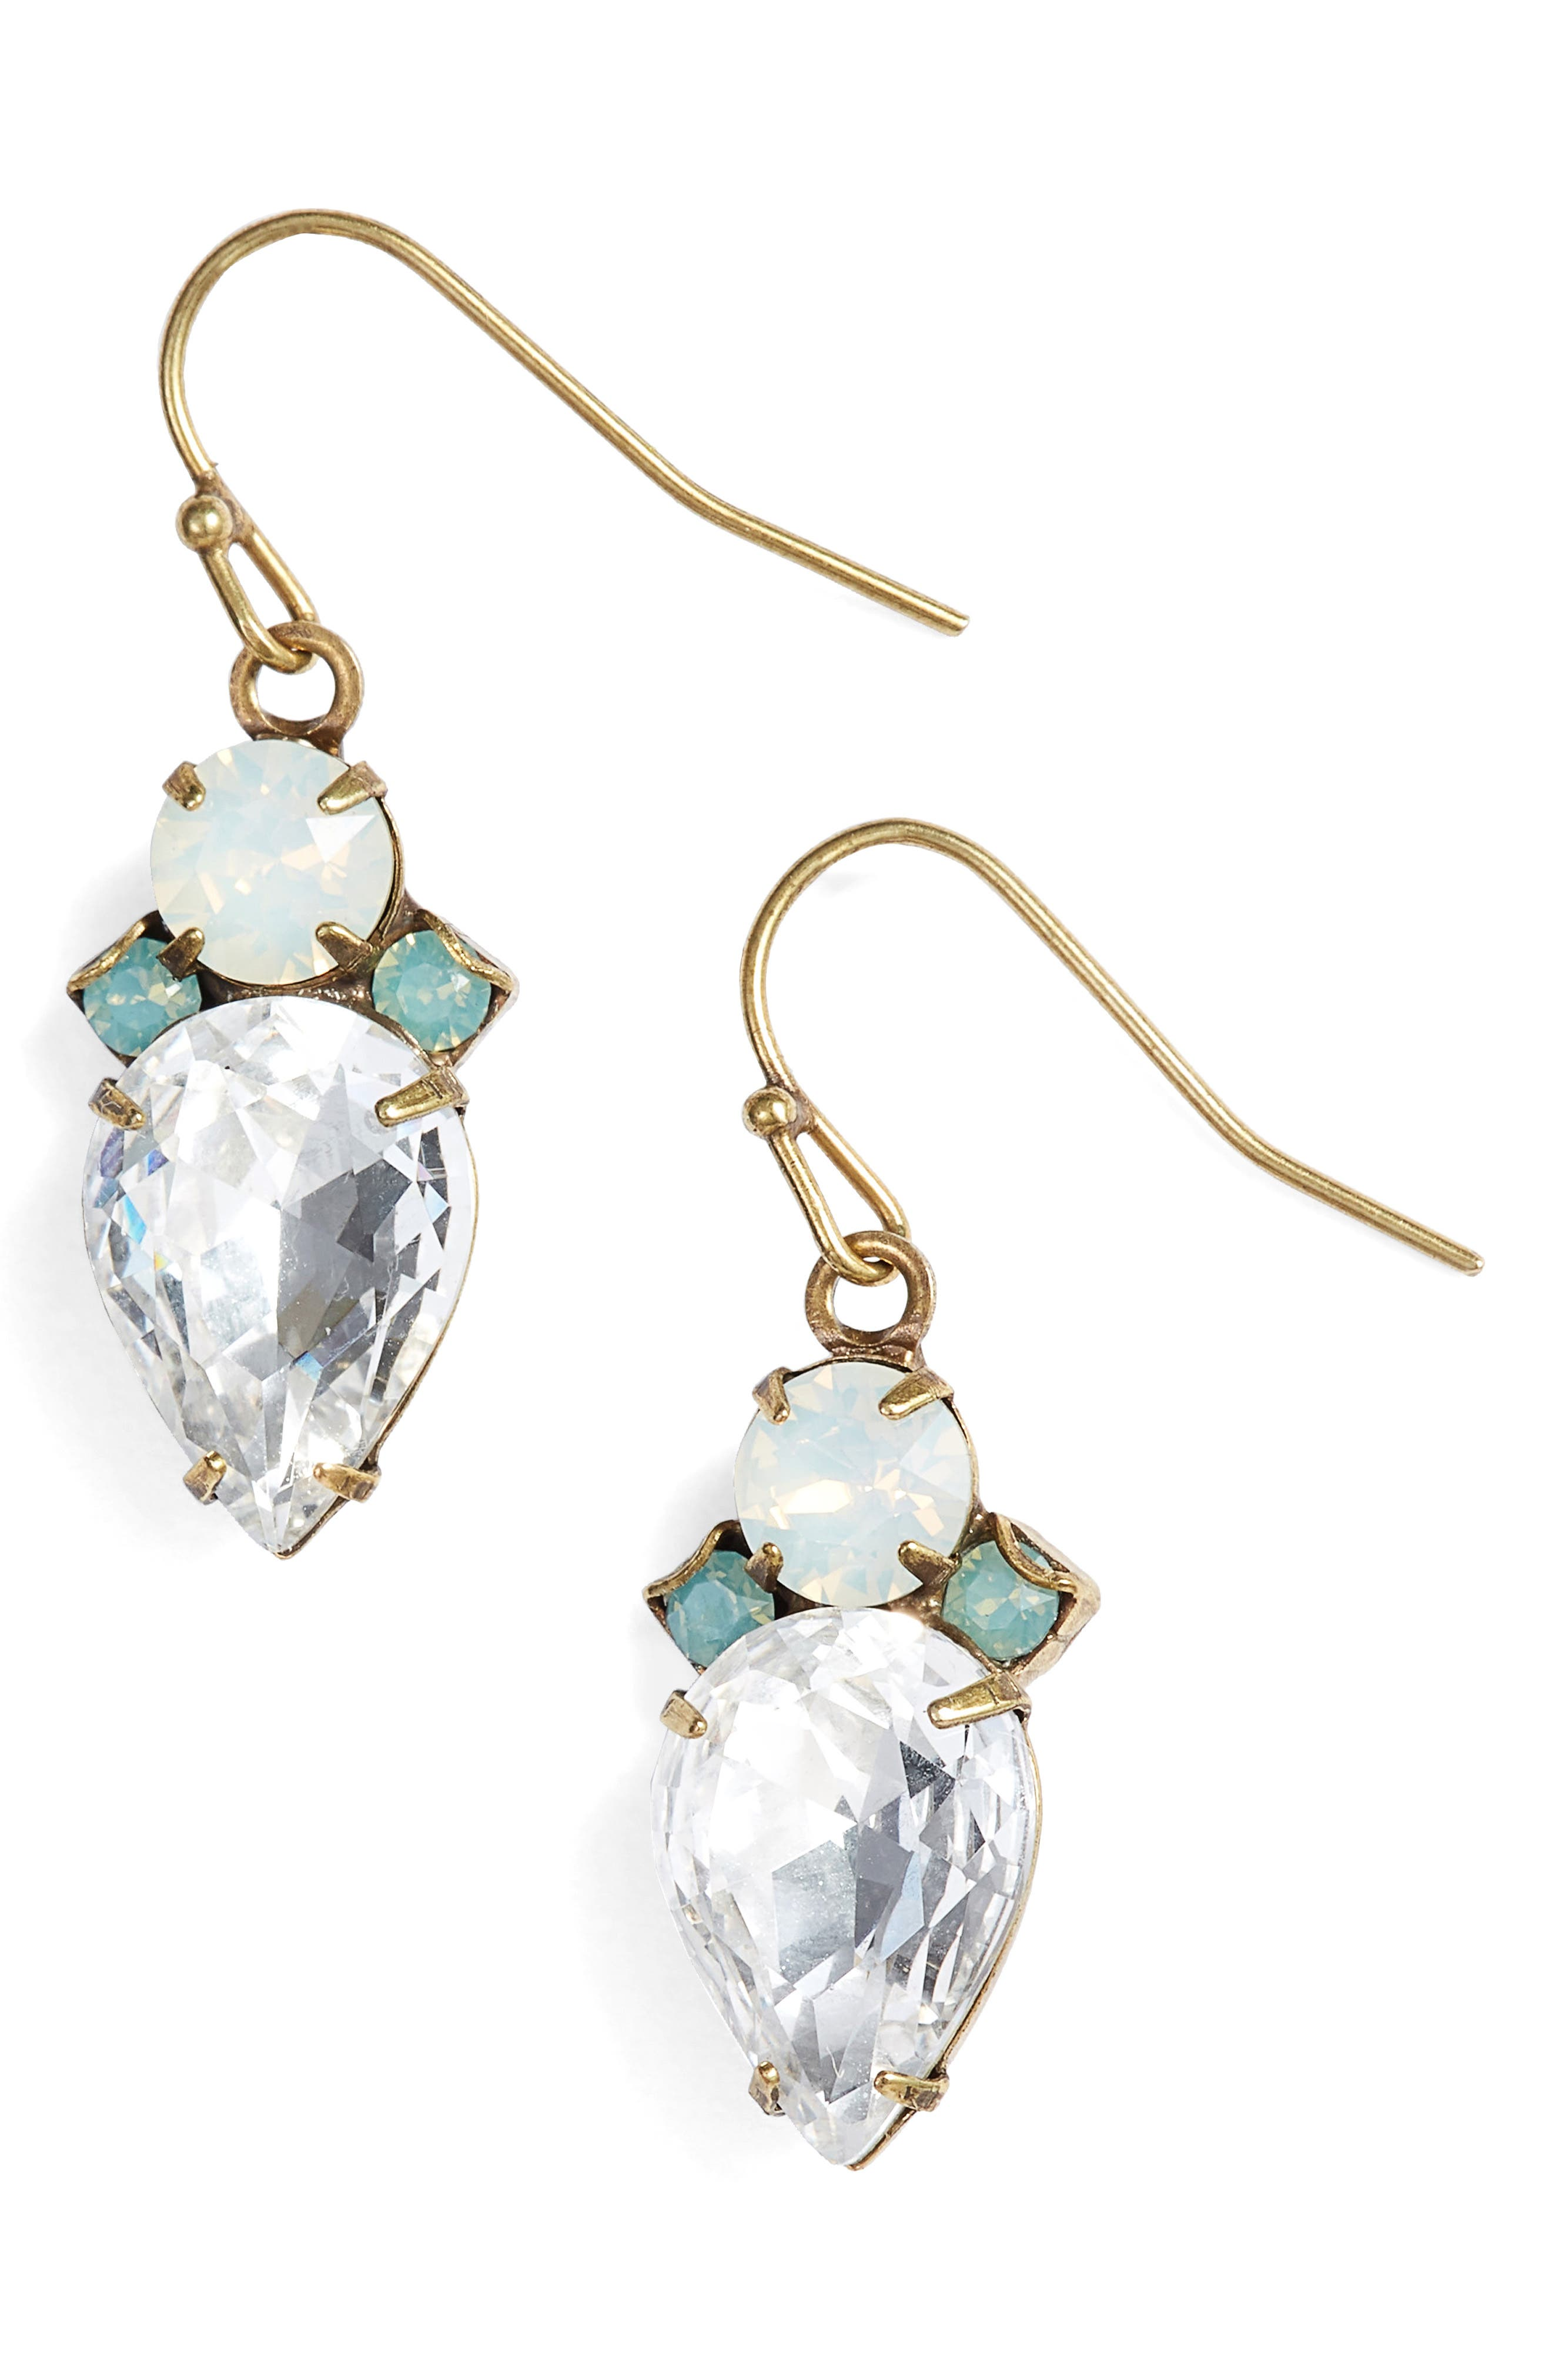 Tearing Up Crystal Drop Earrings,                         Main,                         color, Clear